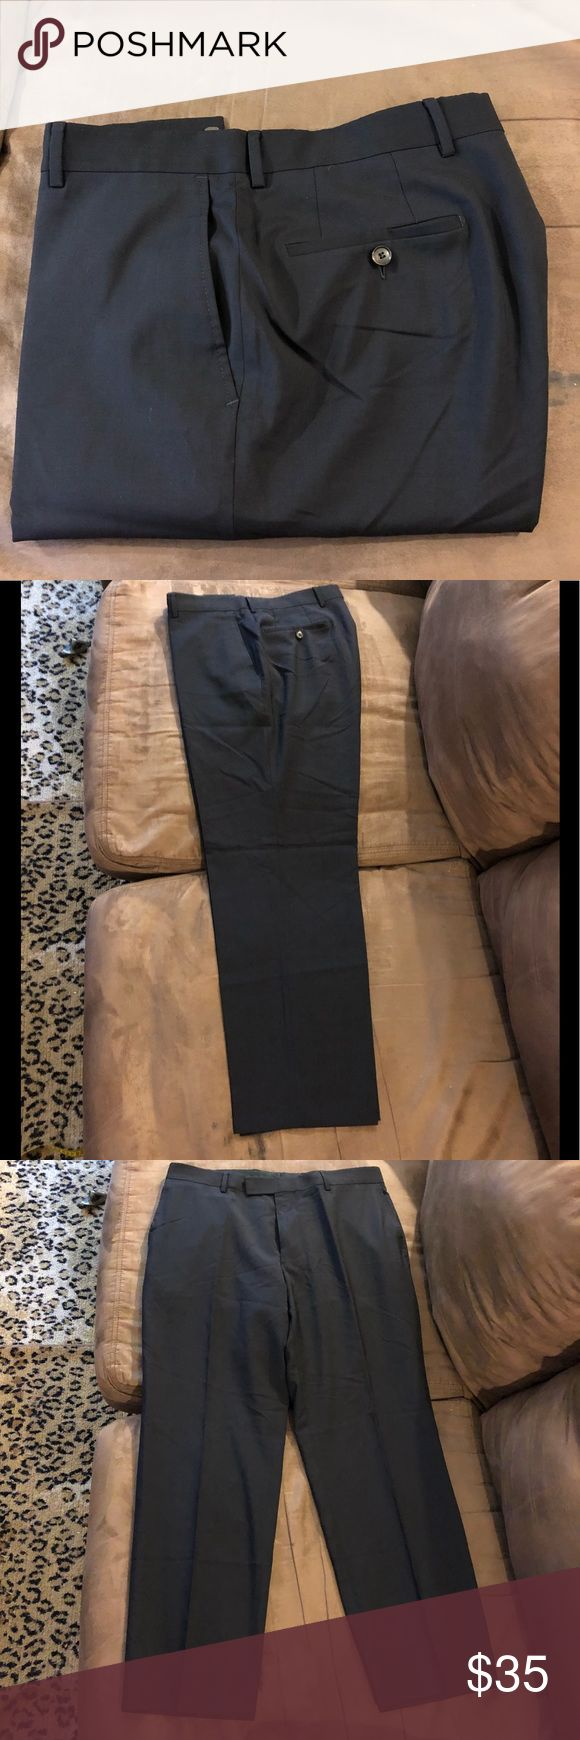 Hugo Boss Navy Blue Flat Front Dress Pants 36x31 Hugo Boss Solid Navy Blue Dress Pants size 36x31, Flat Front and Plain bottom! Great condition!  Please make reasonable offers and bundle! Ask questions :) Hugo Boss Pants Dress